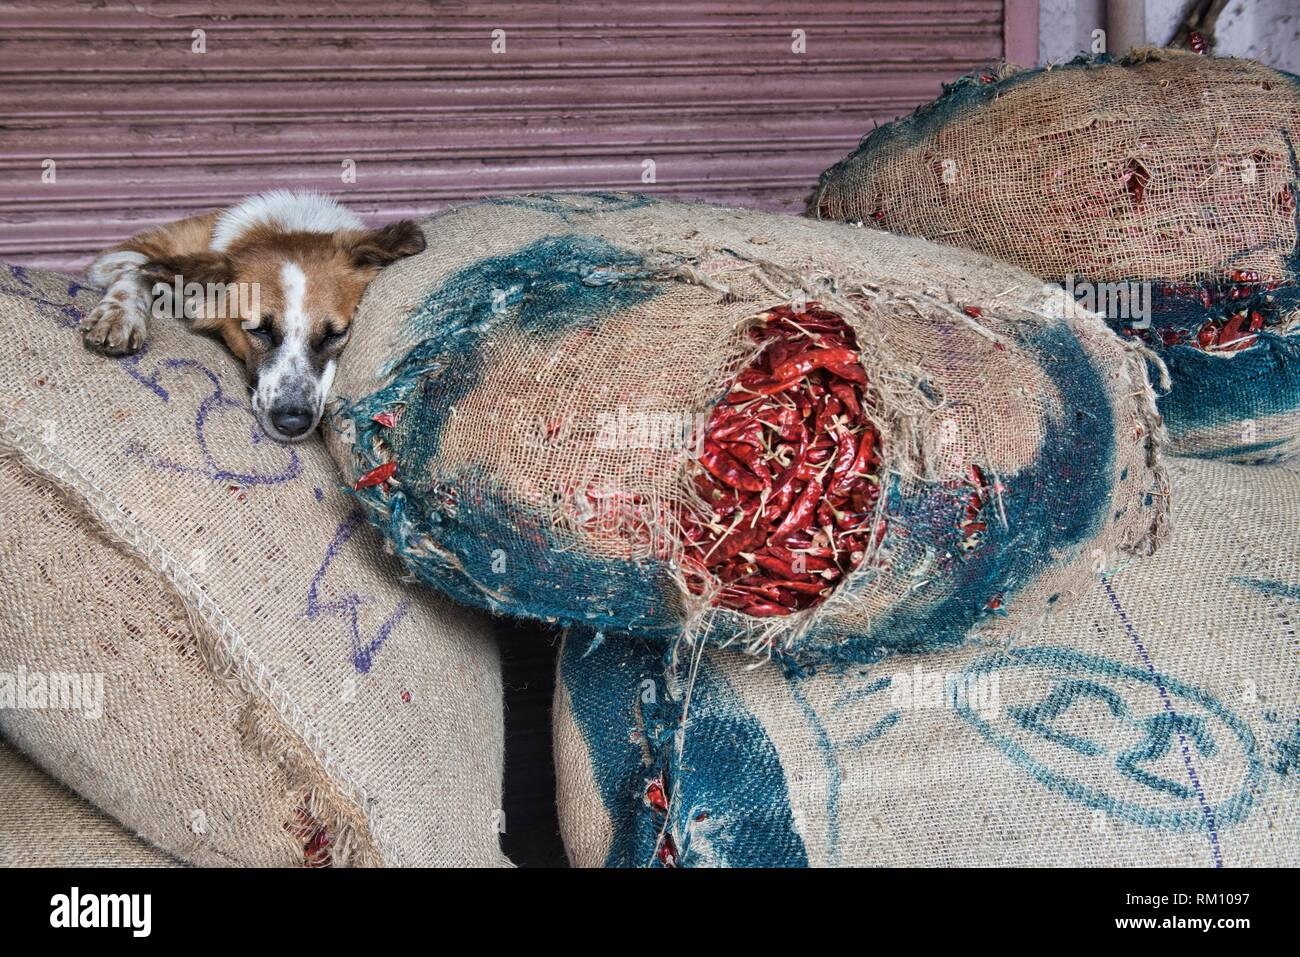 Let sleeping dogs lie, dog on top of chiles in the Khari Baoli Spice Market, Old Delhi, India. - Stock Image